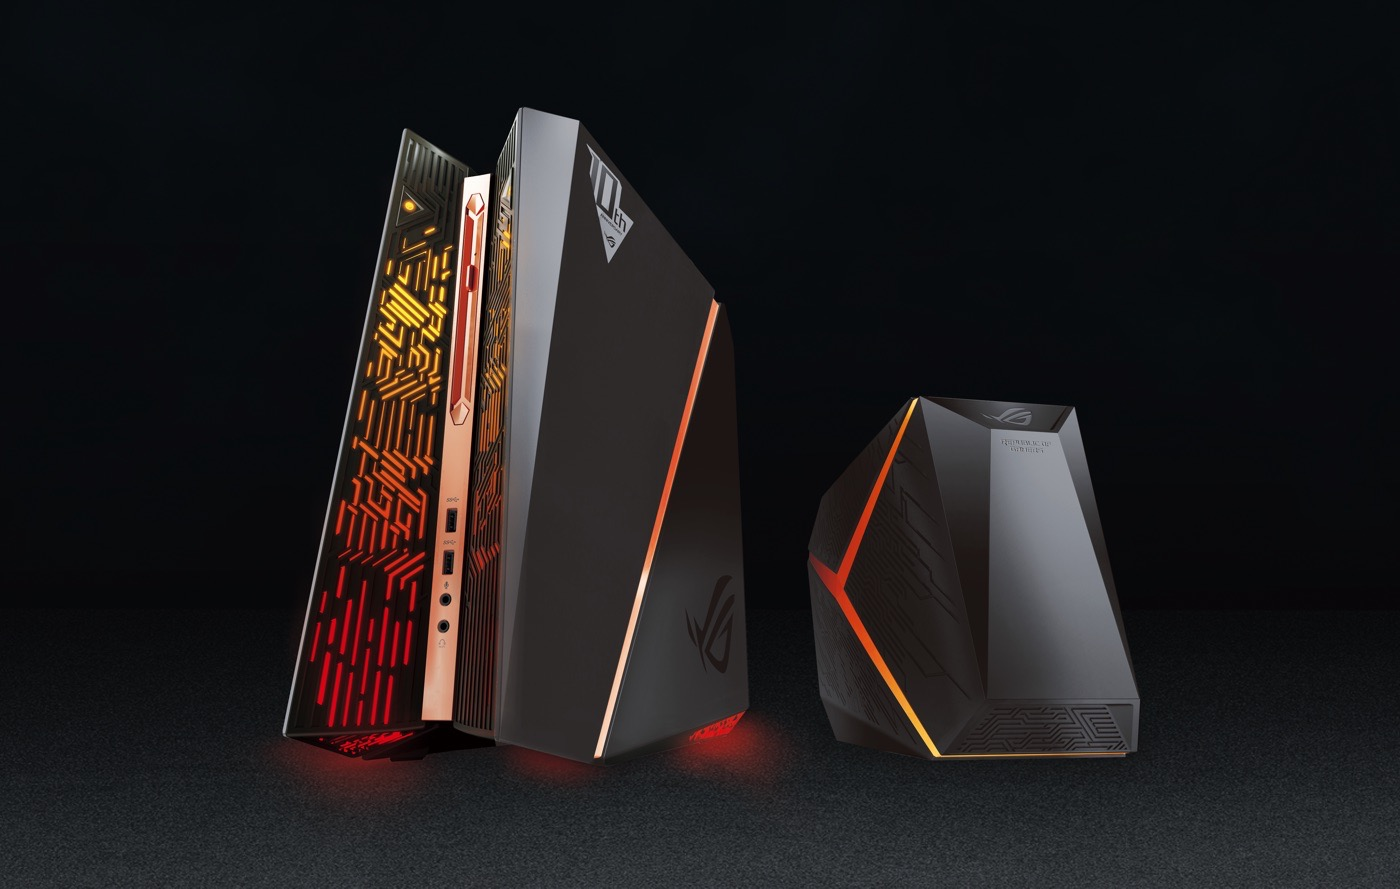 Asus Tower PC Gaming